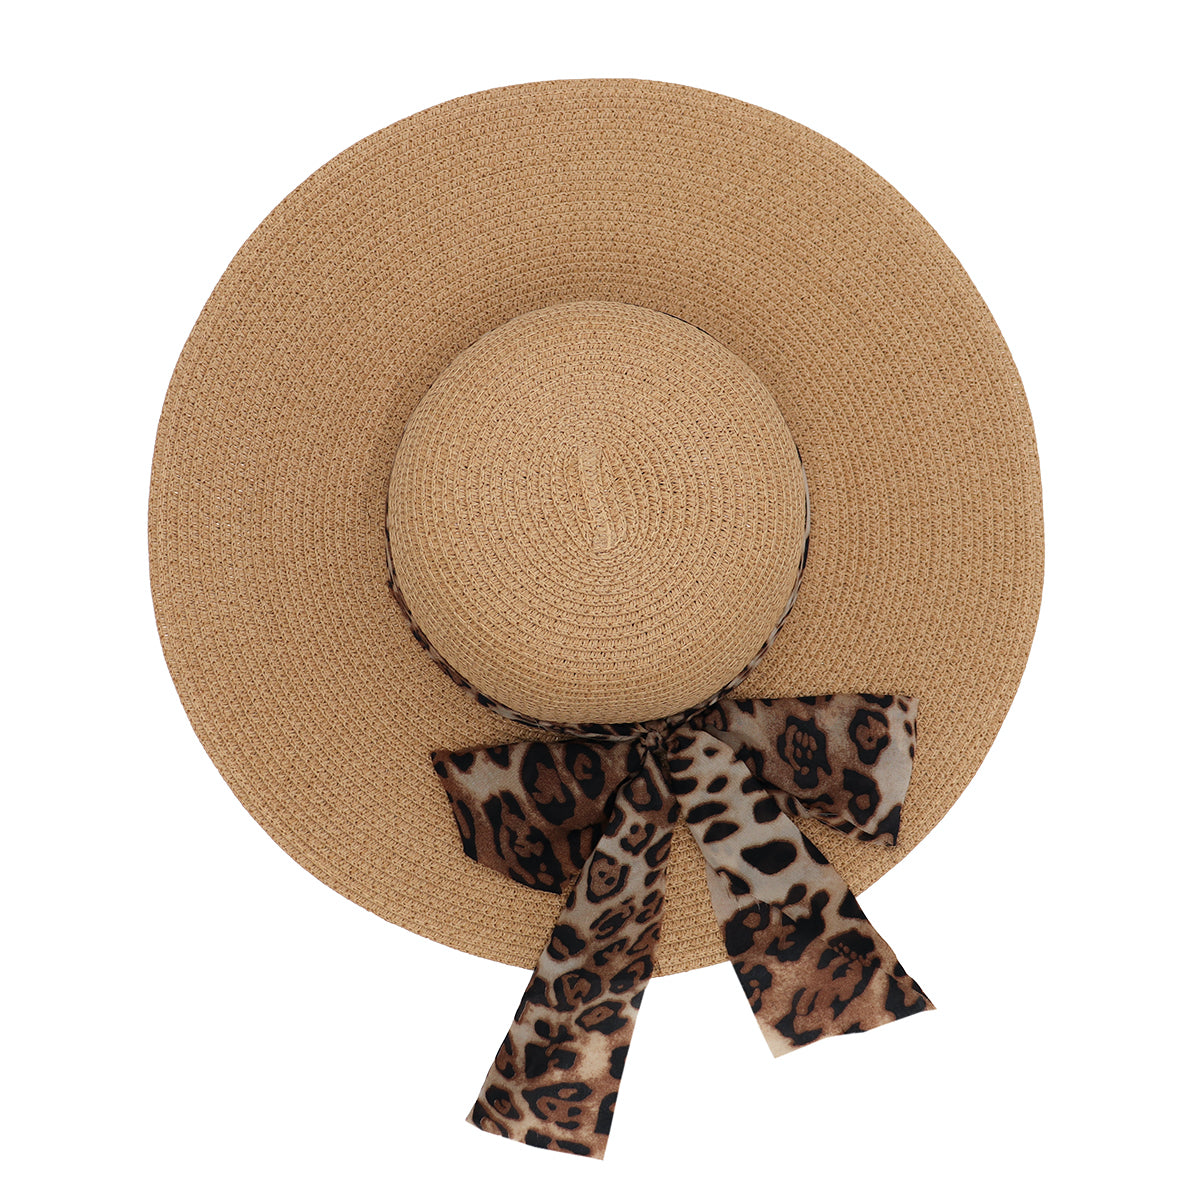 1950s Women's Hat Styles & History Charming Charlie Paper Straw Summer Floppy Hat With Leopard Bow in Brown $24.99 AT vintagedancer.com